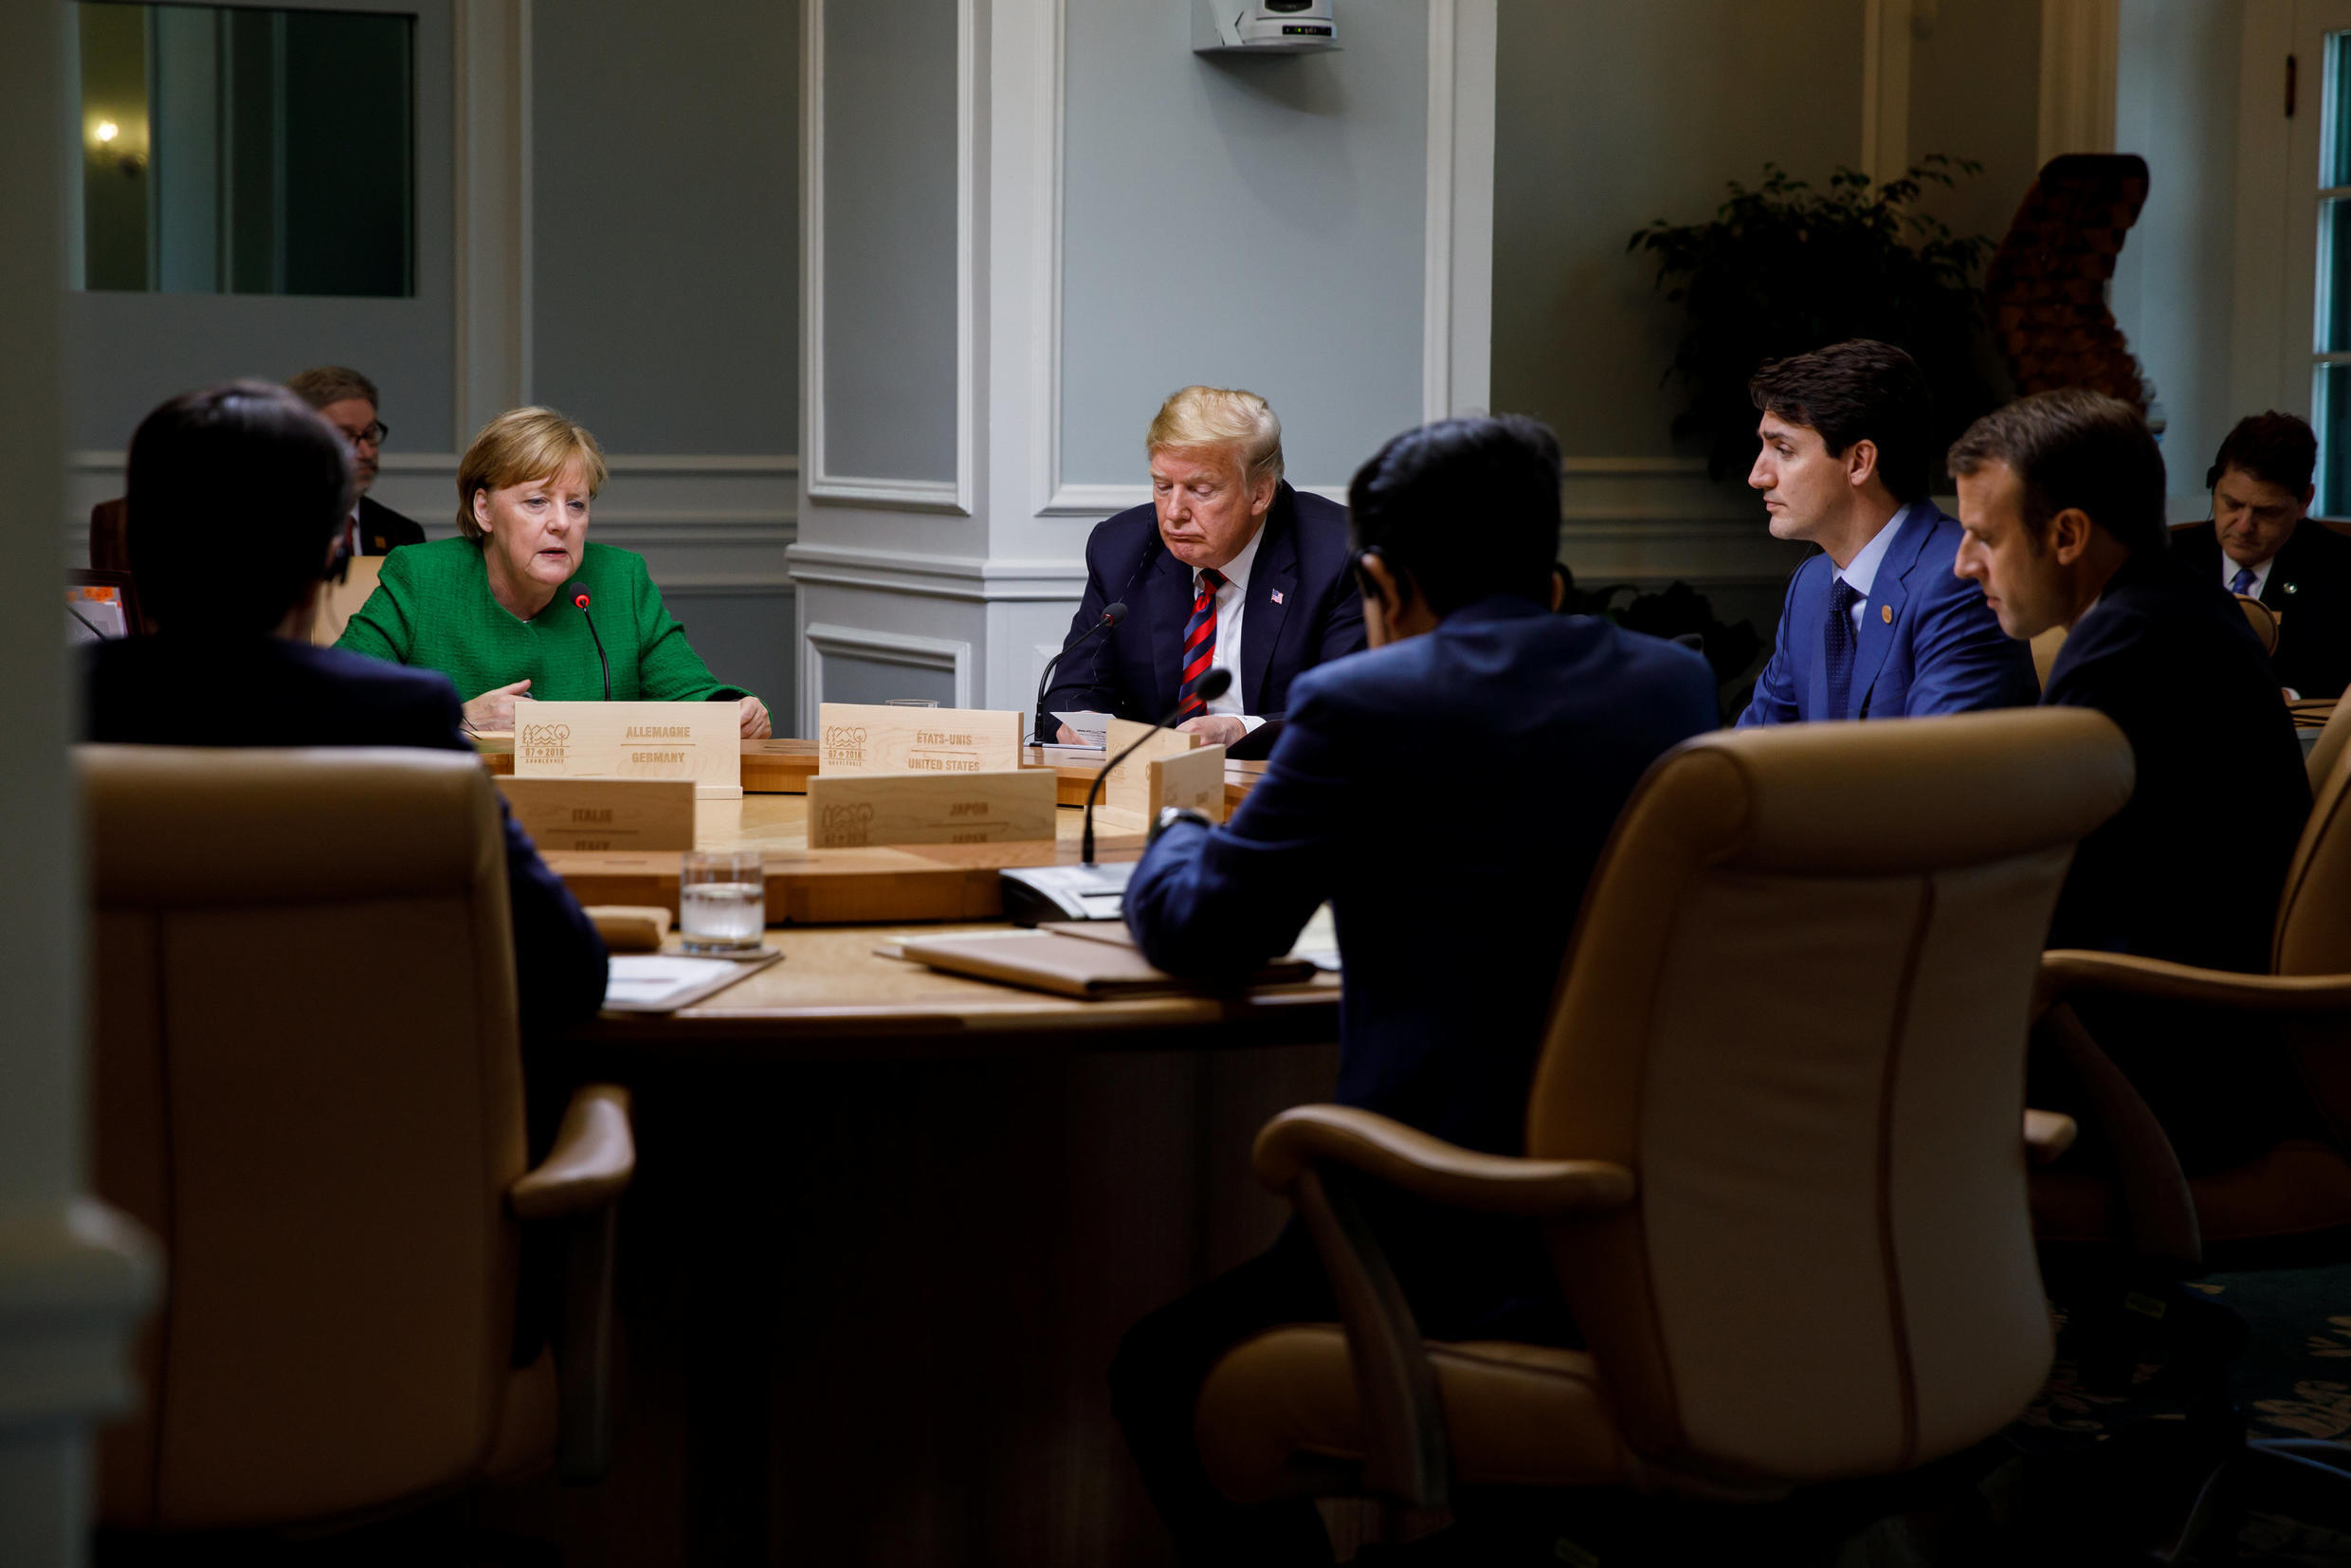 Canada's Prime Minister Justin Trudeau and G7 leaders France's President Emmanuel Macron, Germany's Chancellor Angela Merkel, Japan's Prime Minister Shinzo Abe and U.S. President Donald Trump take part in a working session on the first day of the G7 meetin